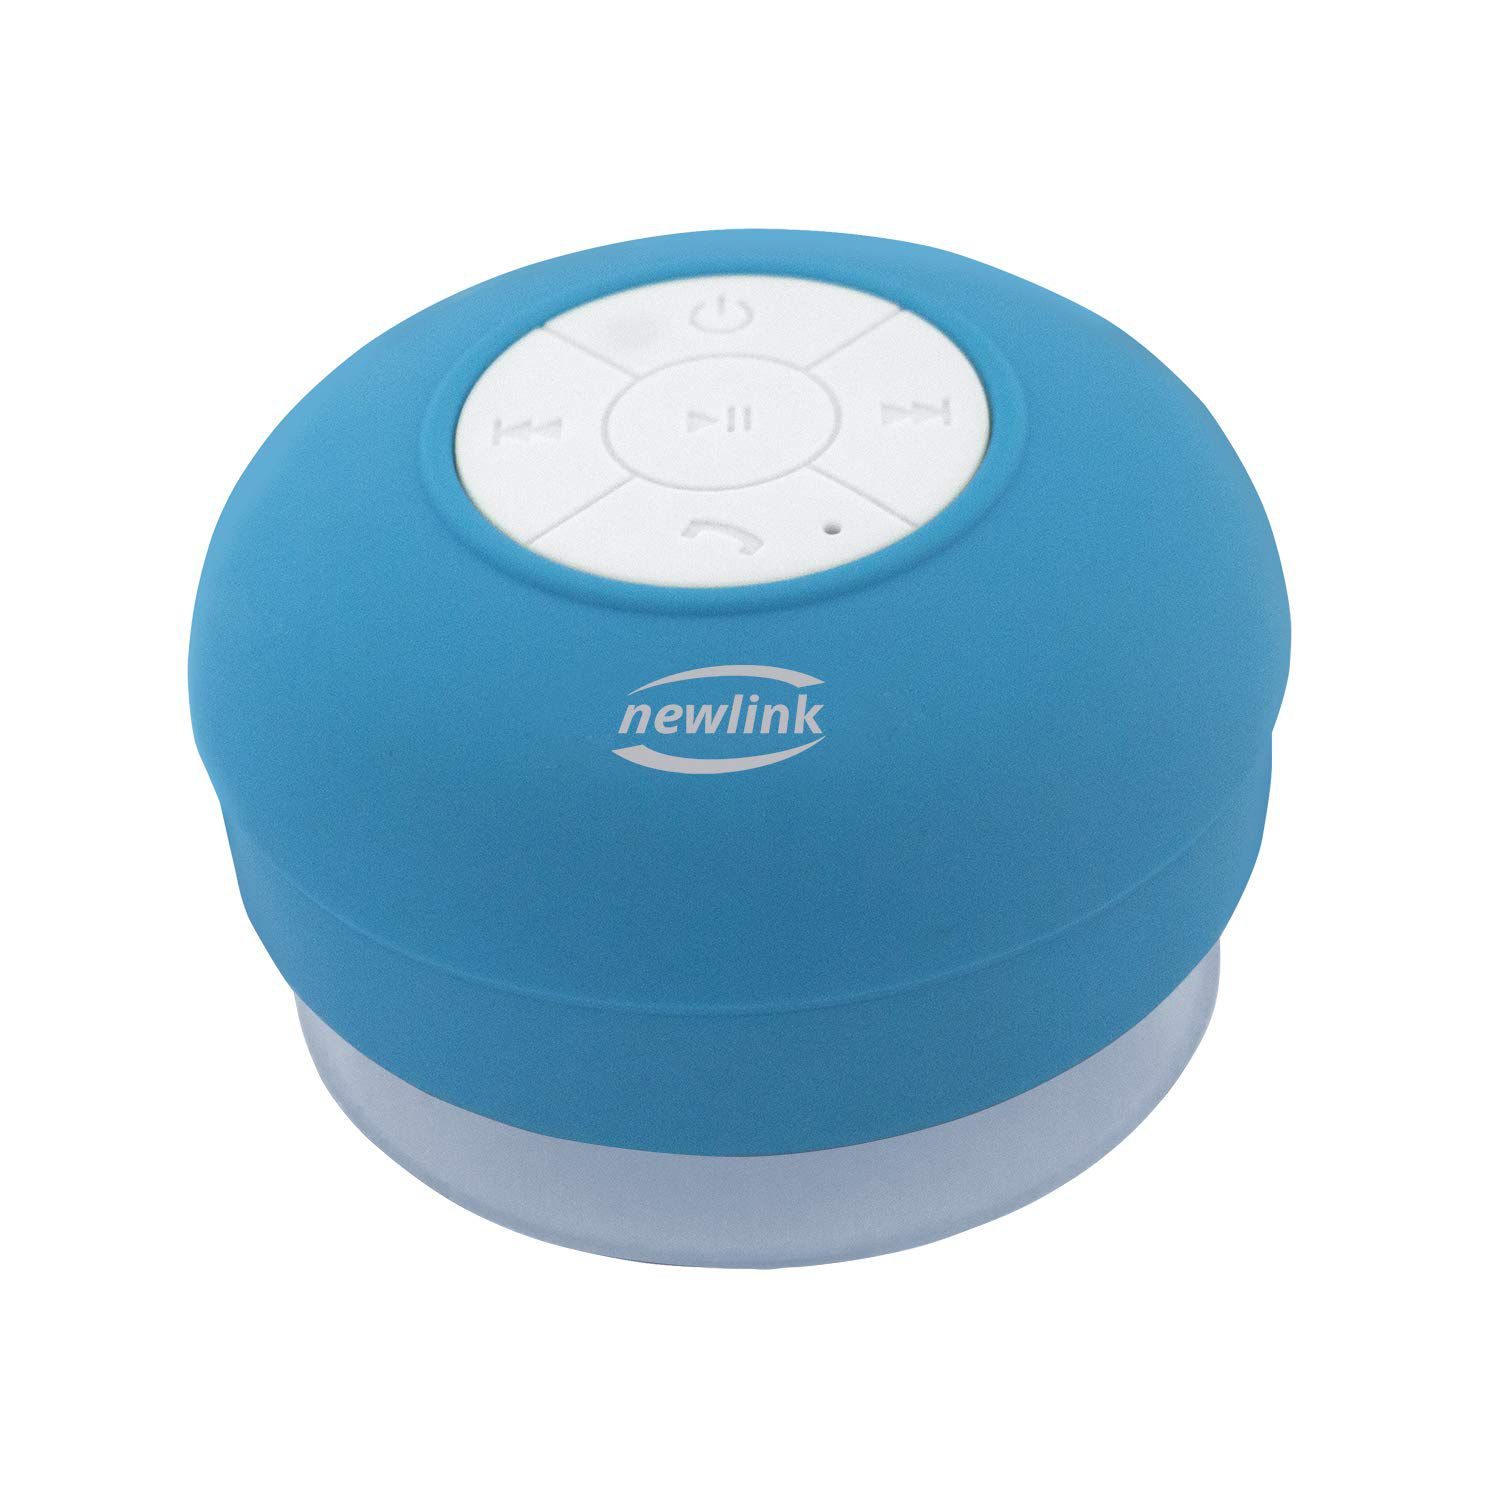 Auto-falantes NewLink Bubble SP109 Azul